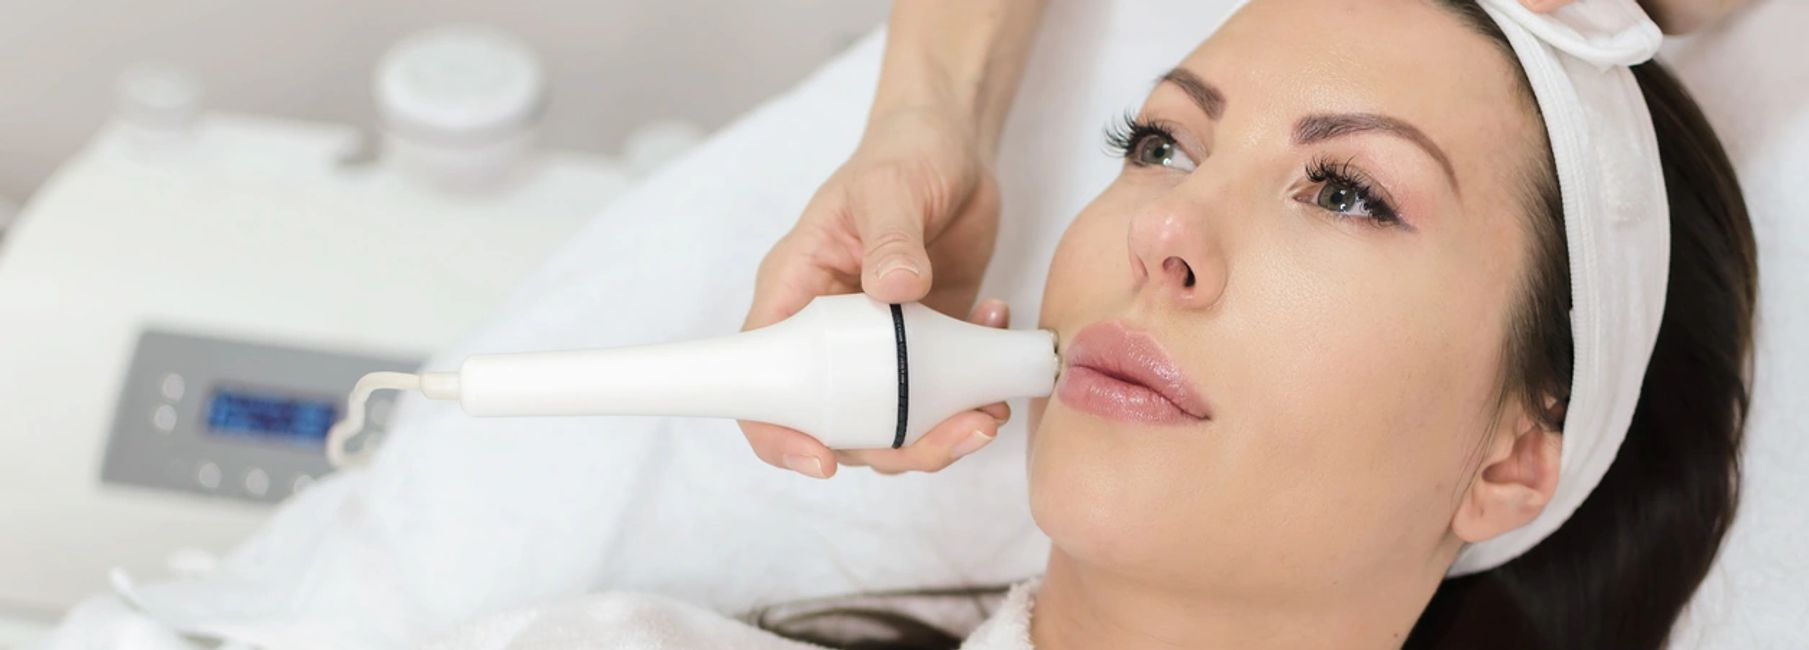 Radio frequency facial can assist in reducing wrinkles and fine lines, aiming to help you look and f